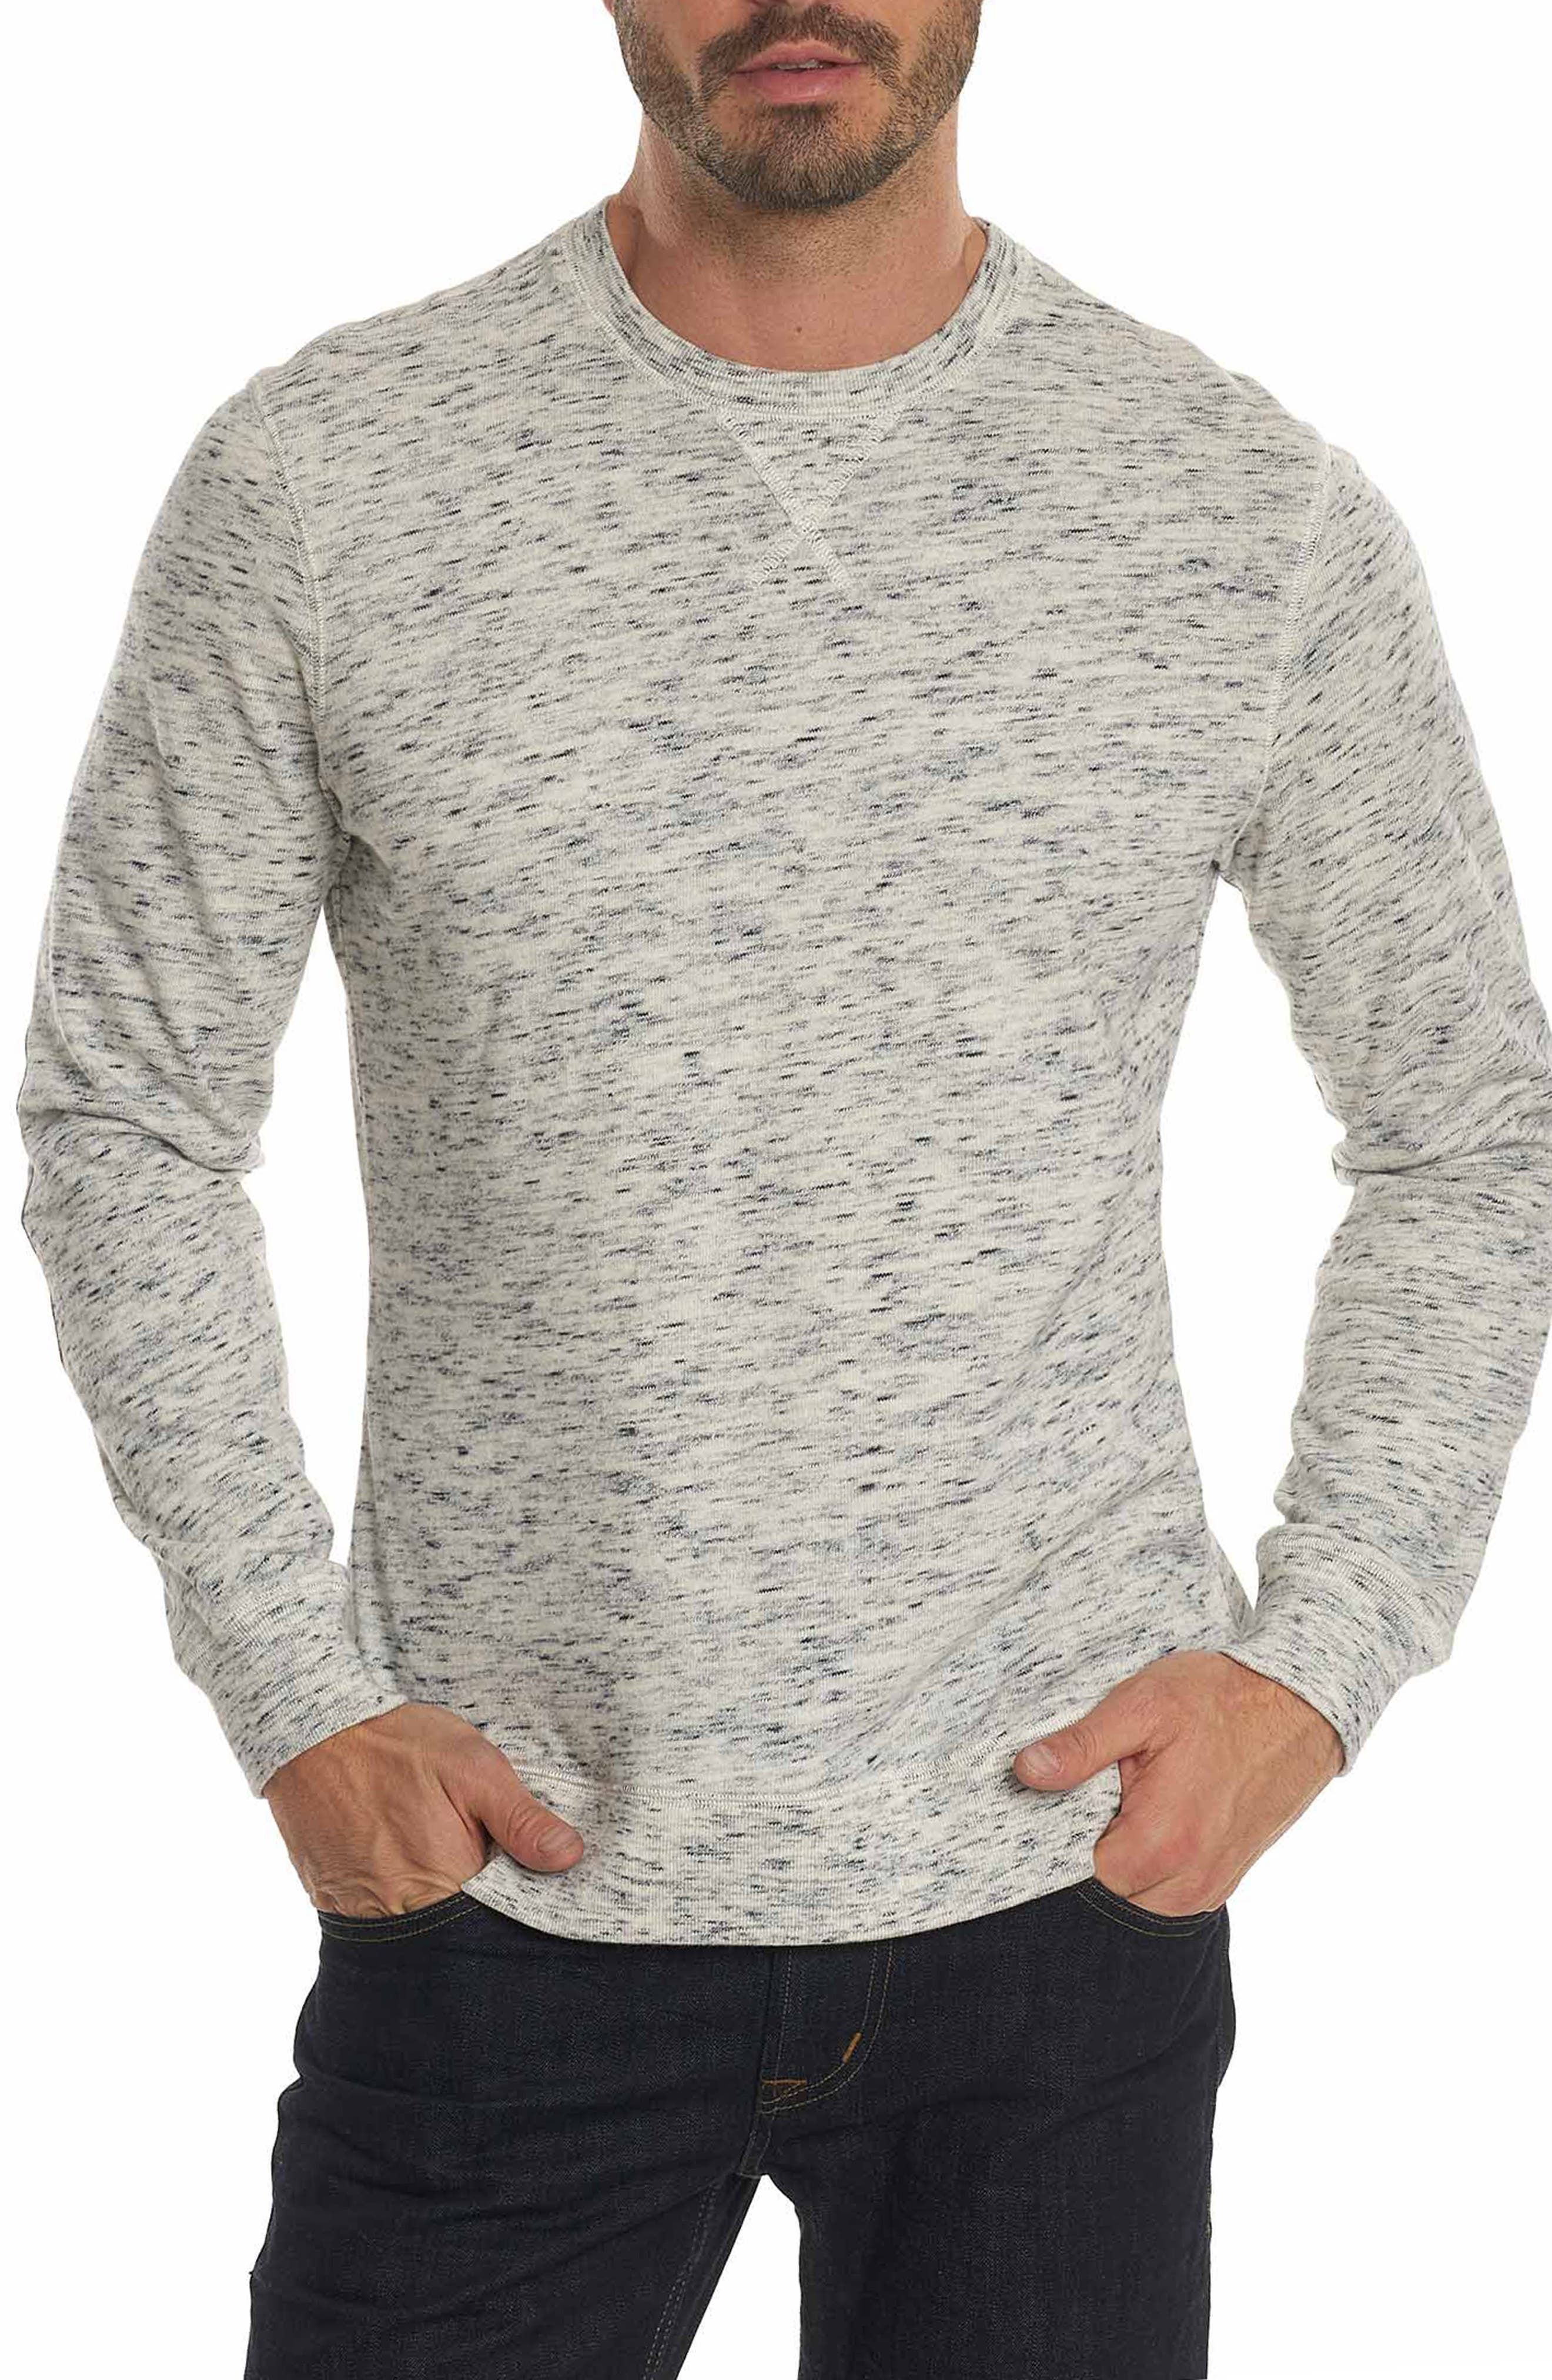 Main Image - Robert Graham Endurance Elbow Patch Sweatshirt